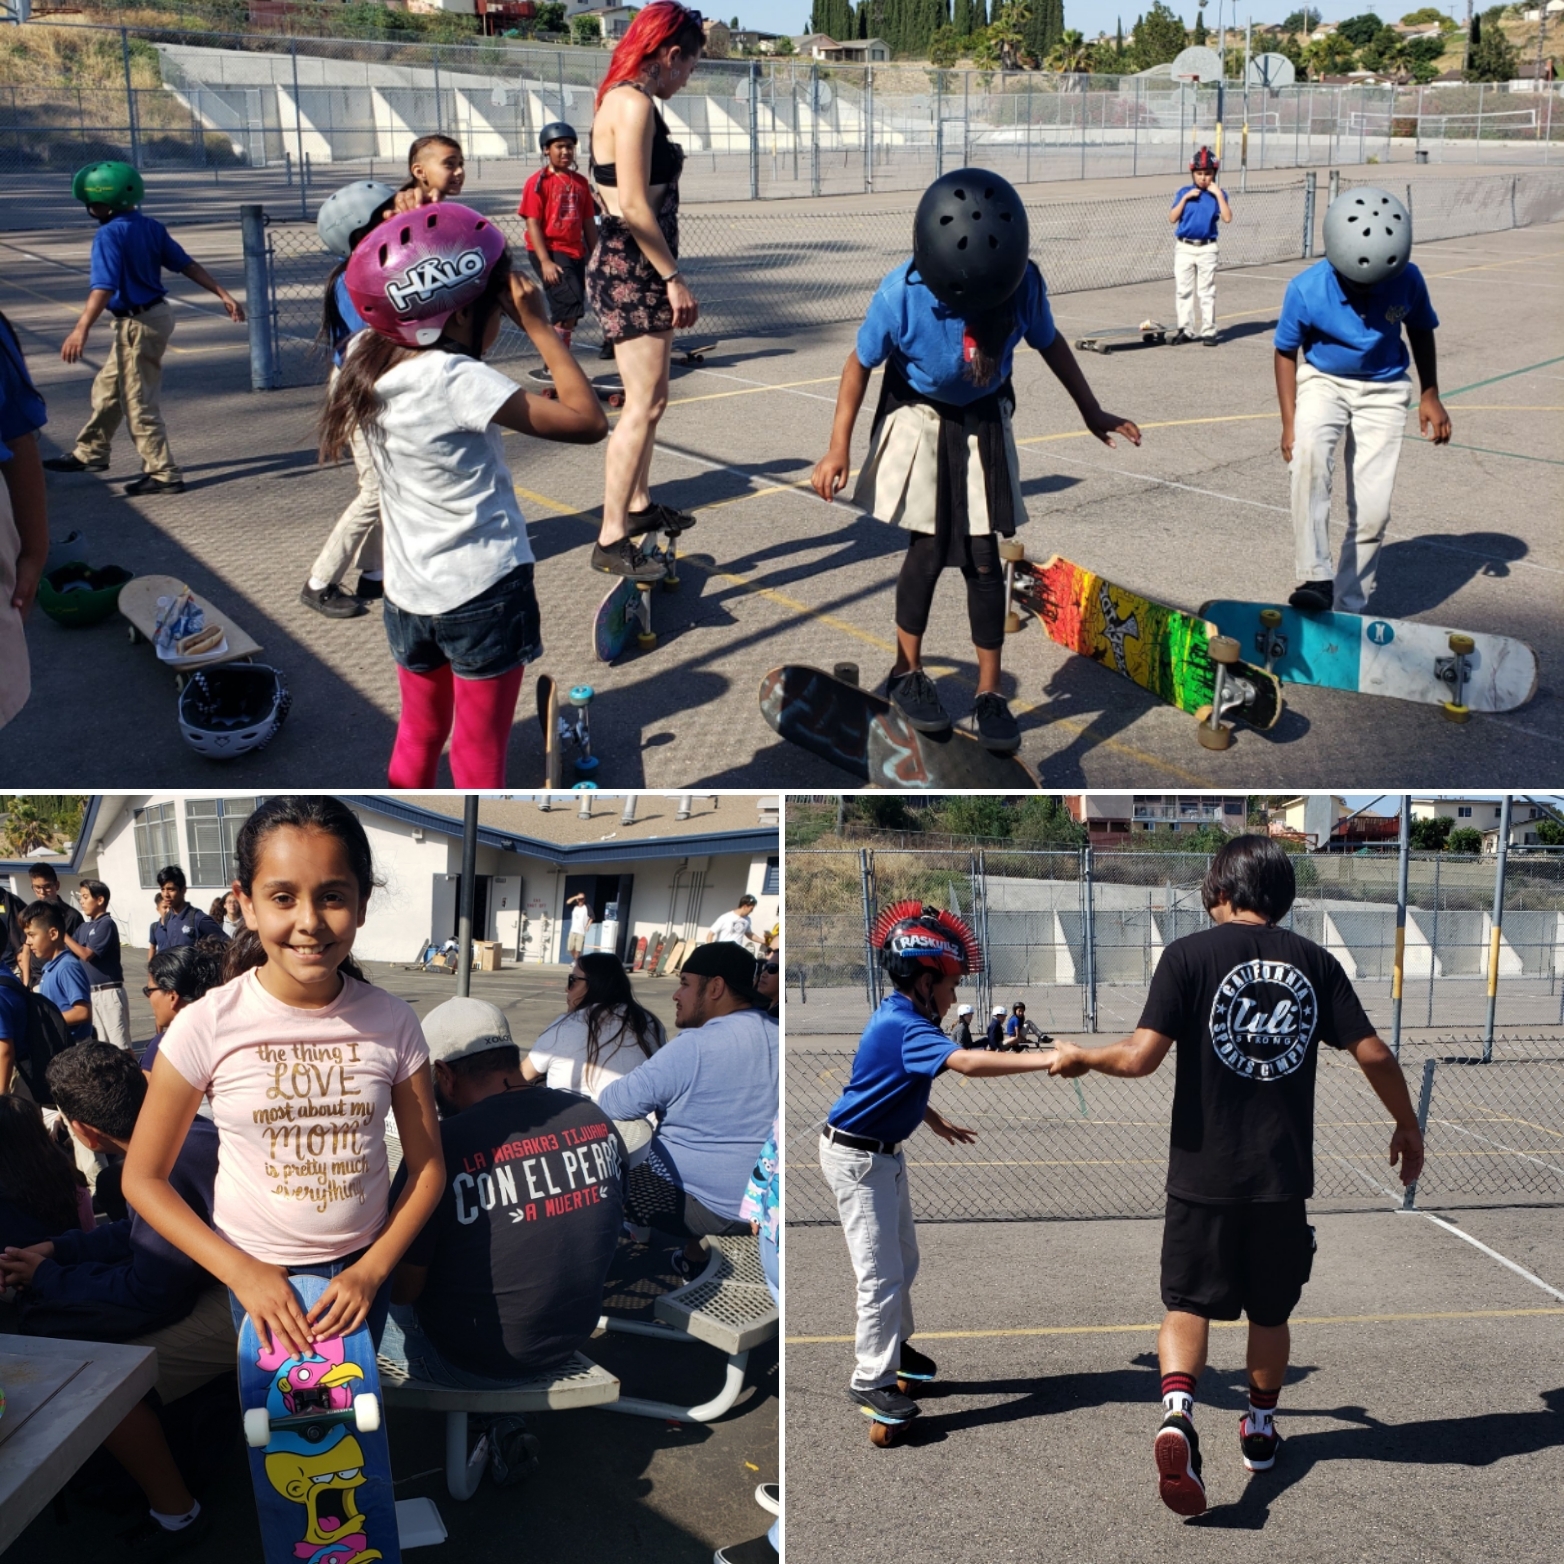 Keiller End of Year Party & Skate Demo - June 2019We celebrated the end of the school year at Keiller Leadership Academy by having a group of local freestyle skateboarders do a demo and teach our kids different ways to skate. We also had a BBQ and raffle giveaway.